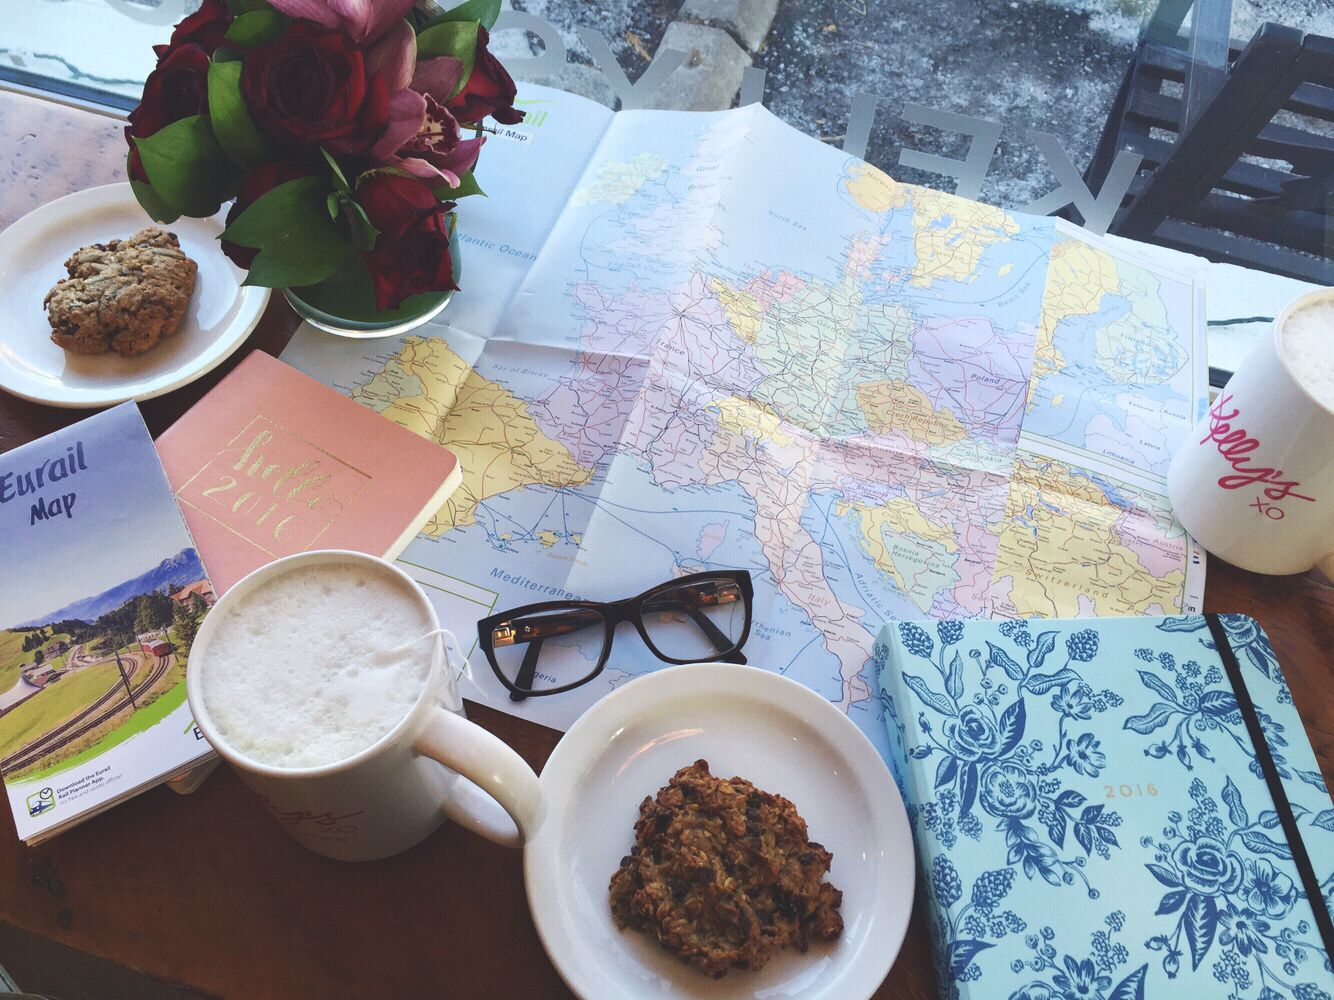 Travel Planning Over Coffee Tumblr Map Runaways Runaway - Travel europe from us map